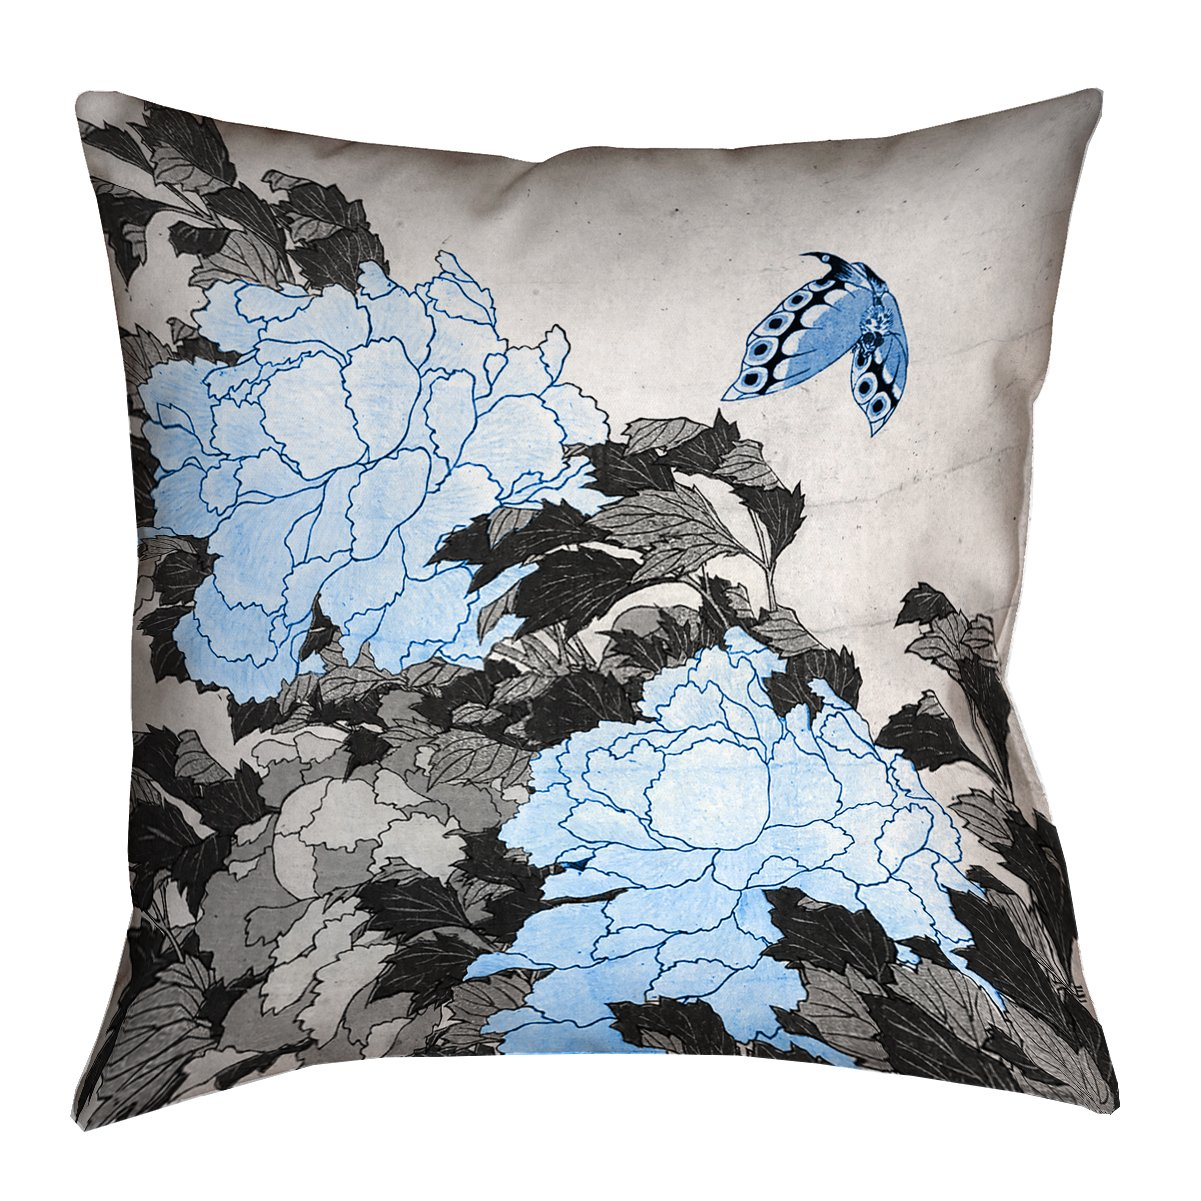 ArtVerse Katsushika Hokusai 14 x 20 Spun Polyester Peonies and Butterfly with Blue Accents Pillow